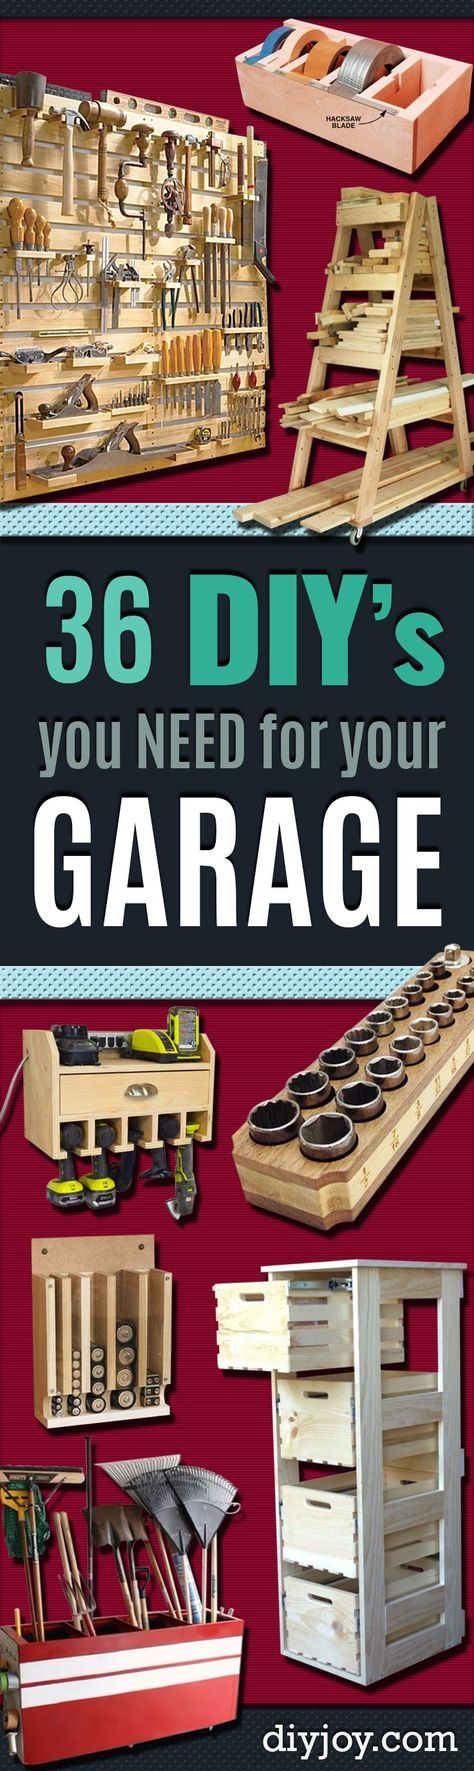 36 diy ideas you need for your garage ideas de bricolaje diy projects your garage needs do it yourself garage makeover ideas include storage organization shelves and project plans for cool new garage decor solutioingenieria Gallery